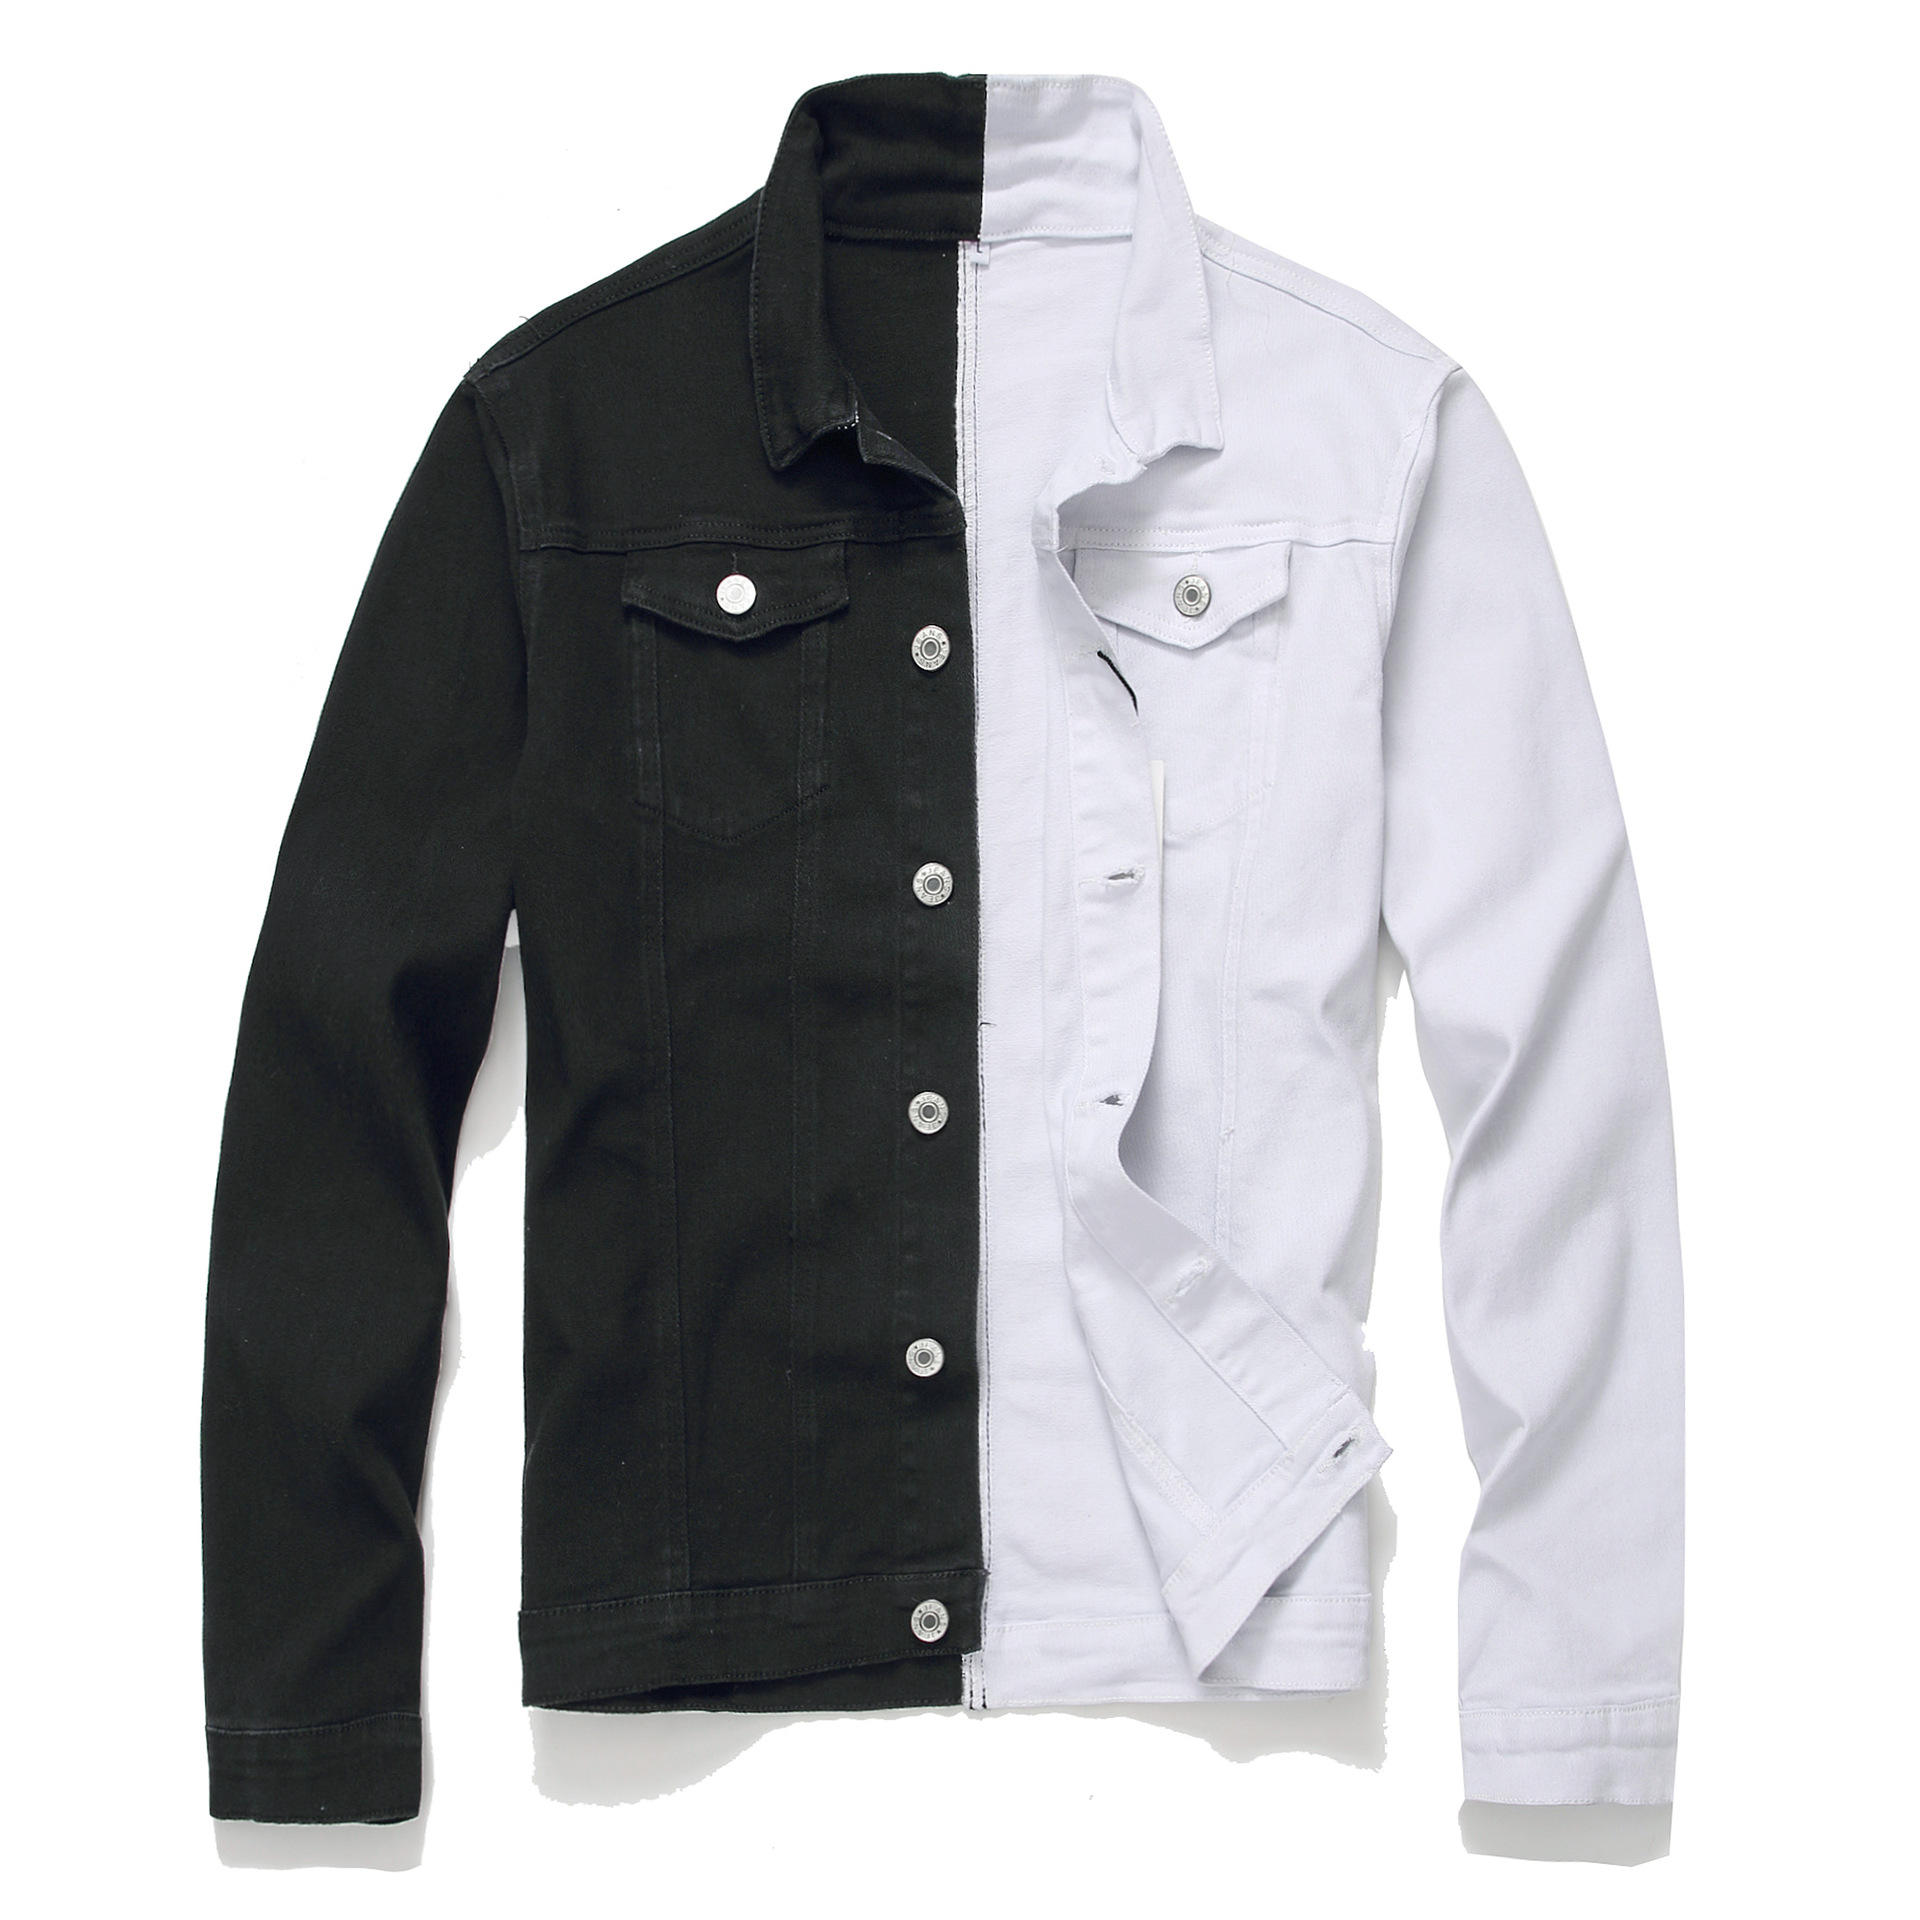 sell well Trendy brand men's jacket black and white two-color denim jacket